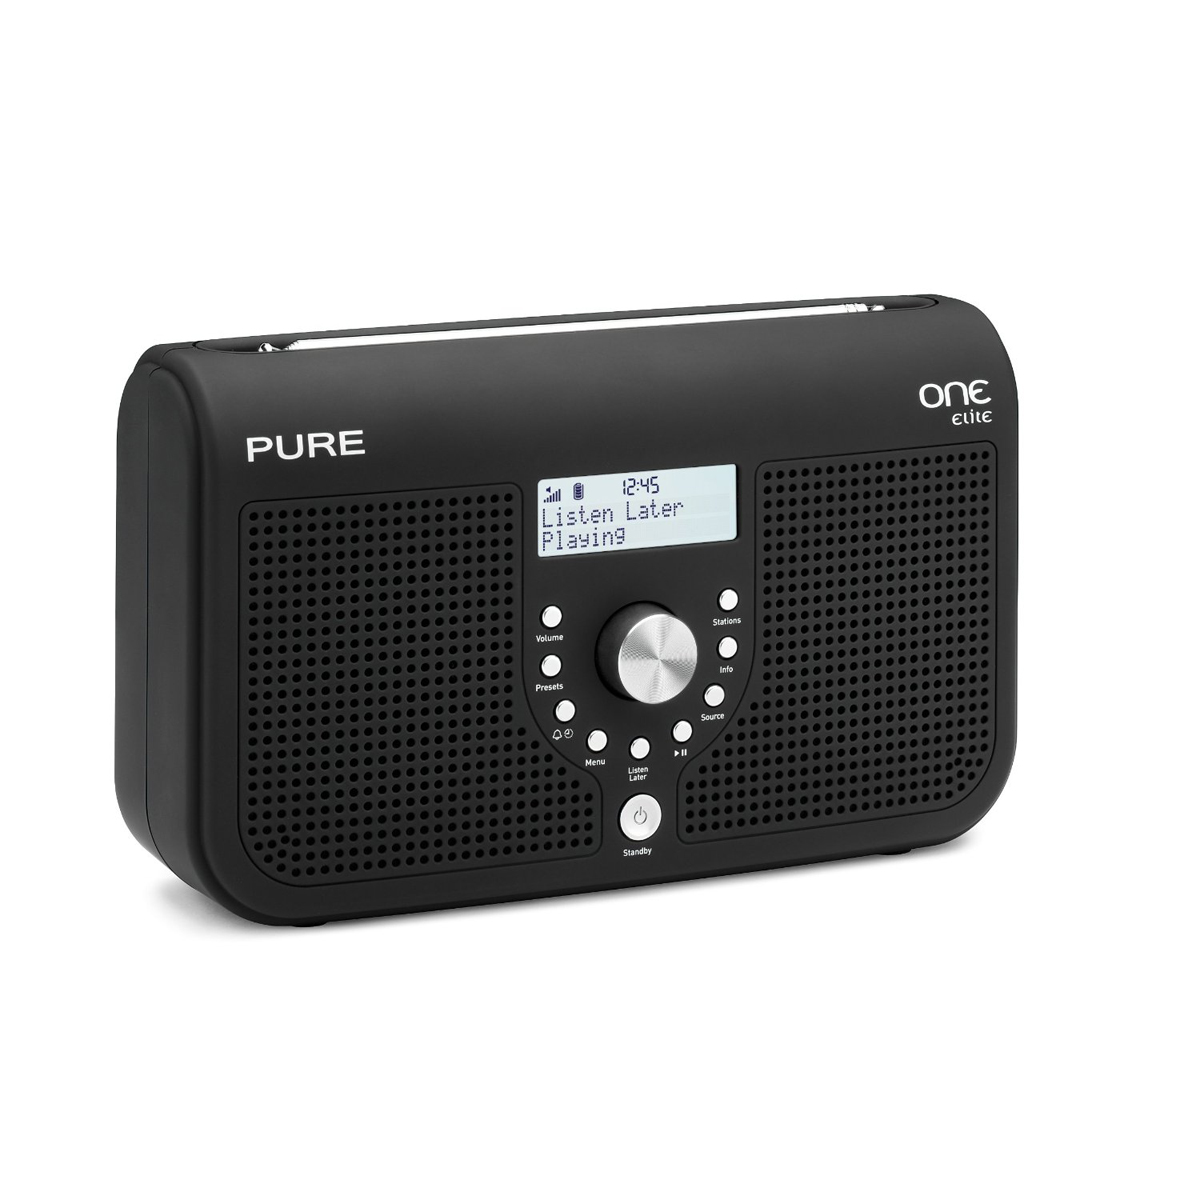 Radio & radio réveil Pure One Elite Series II Noir Radio FM compatible RNT